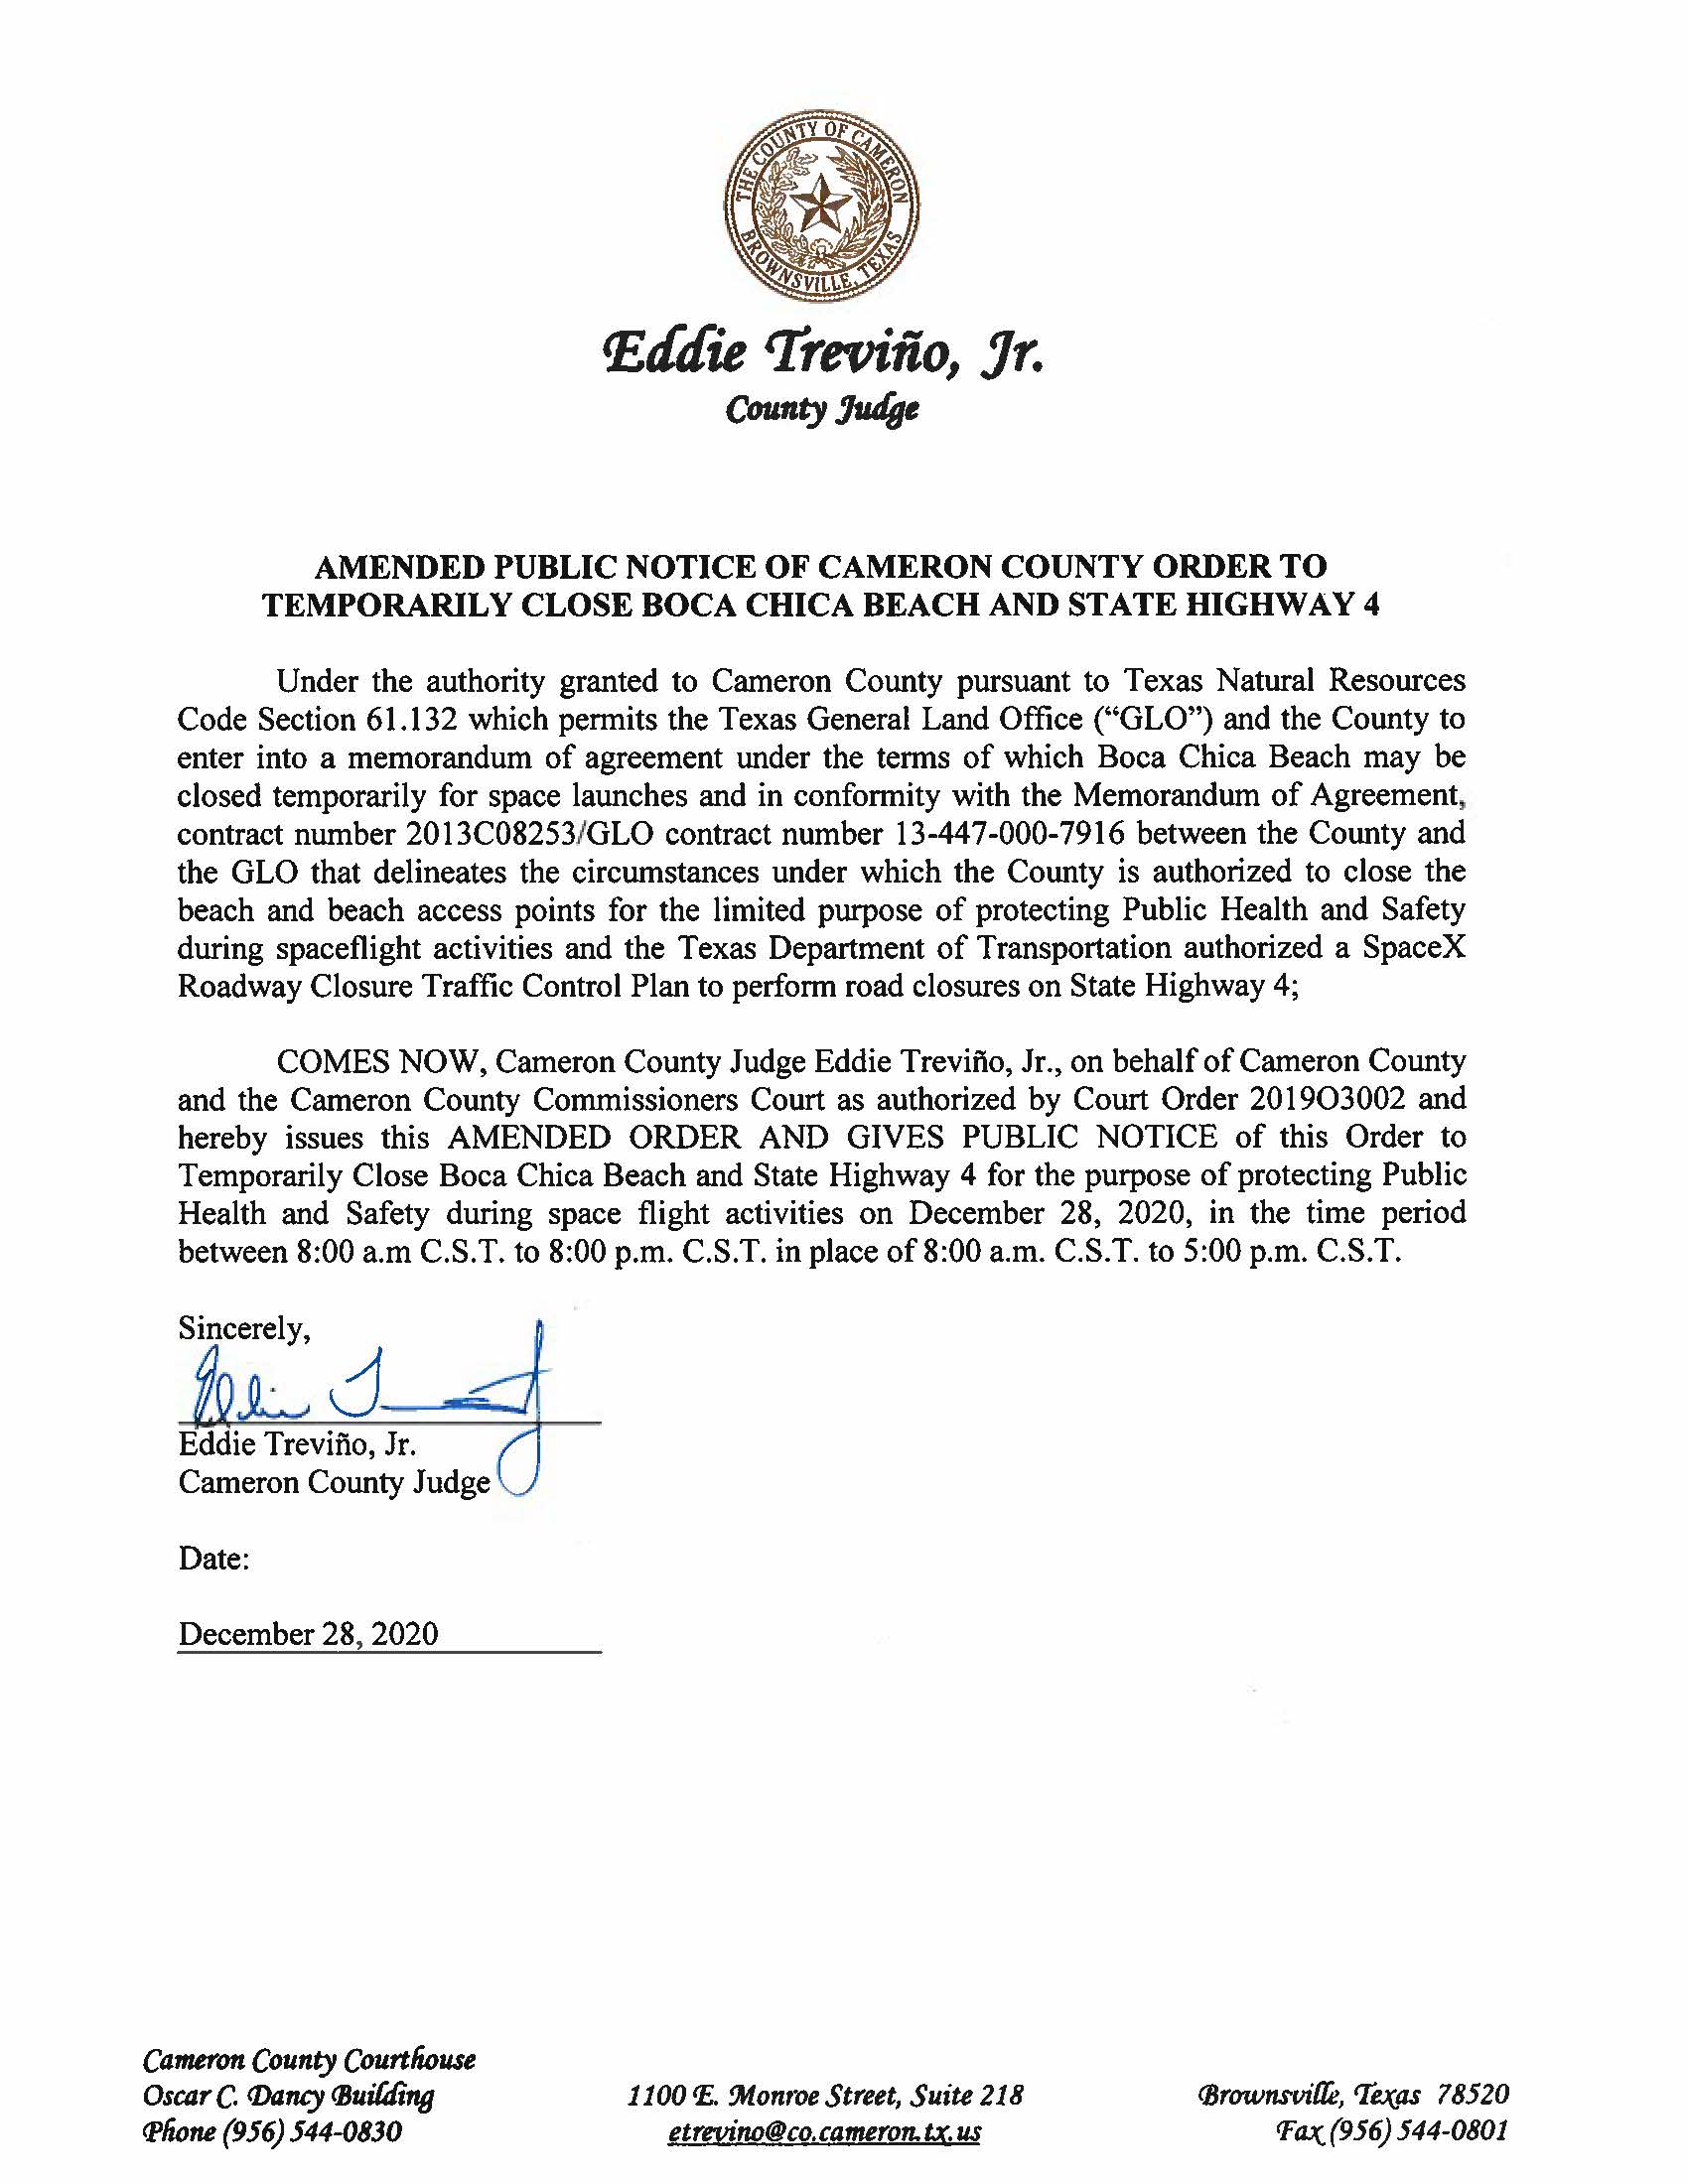 AMENDMENT PUBLIC NOTICE OF CAMERON COUNTY ORDER TO TEMP. BEACH CLOSURE AND HWY.12.28.20